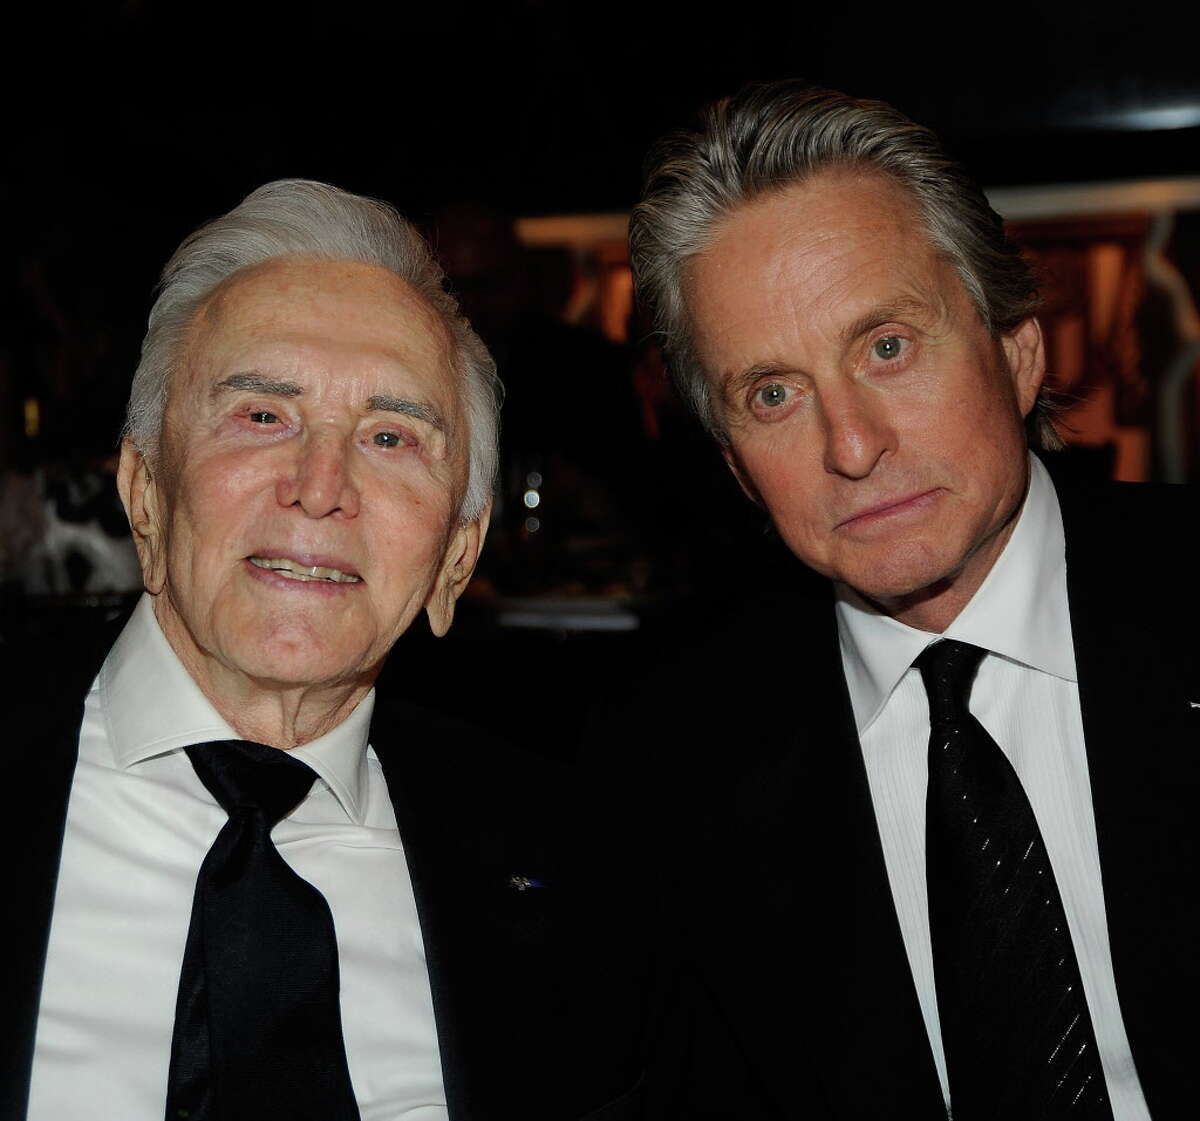 Actors Kirk Douglas and Michael Douglas in the audience during the AFI Lifetime Achievement Award: A Tribute to Michael Douglas held at Sony Pictures Studios on June 11, 2009 in Culver City, California. (Photo by Frazer Harrison/Getty Images for AFI)